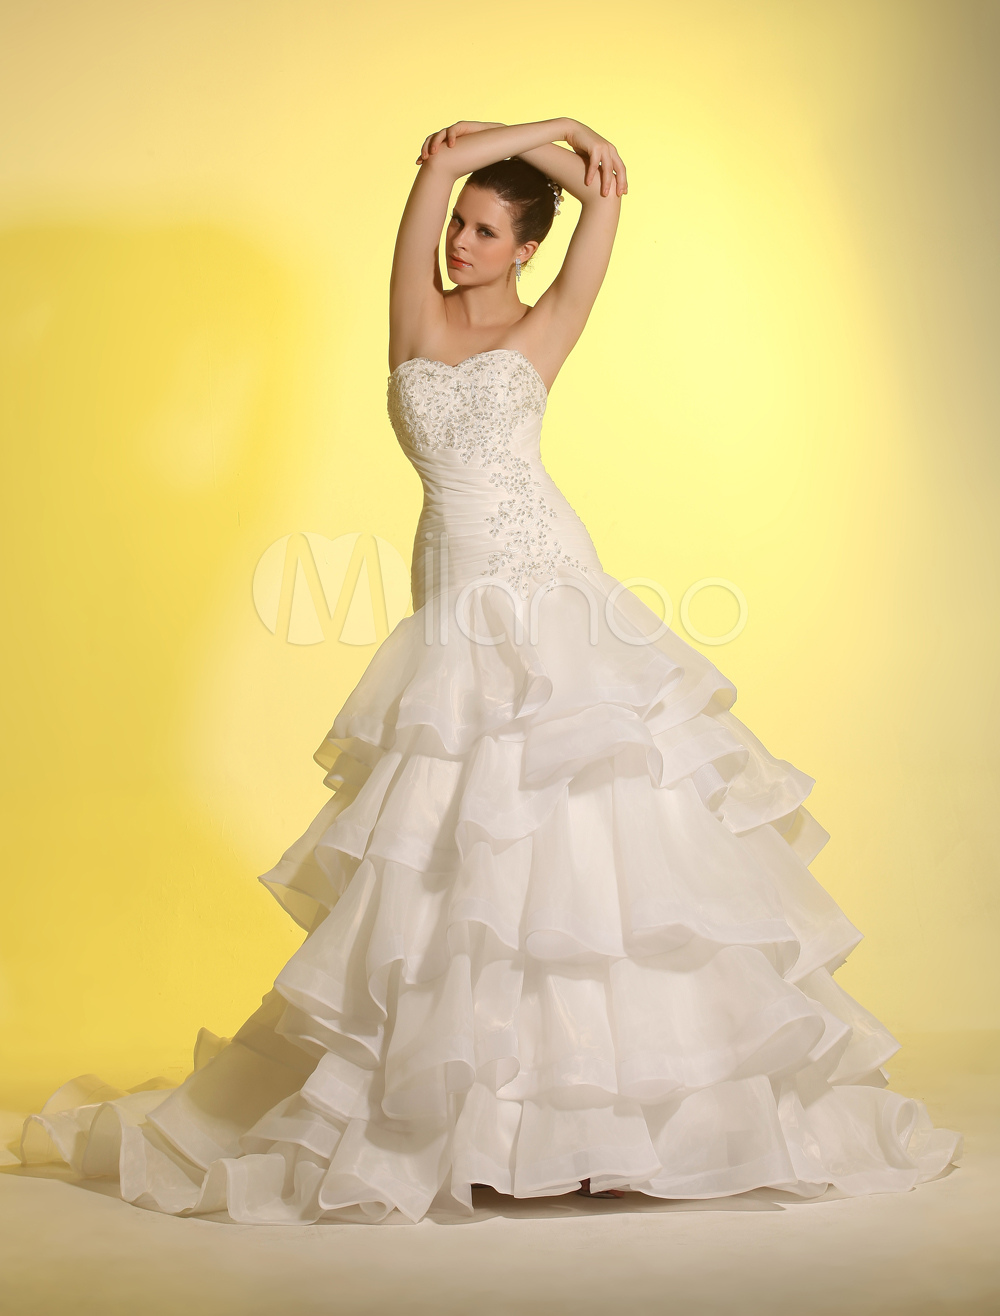 Sweep Ball Gown Sweetheart Ivory Bridal Wedding Gown Milanoo